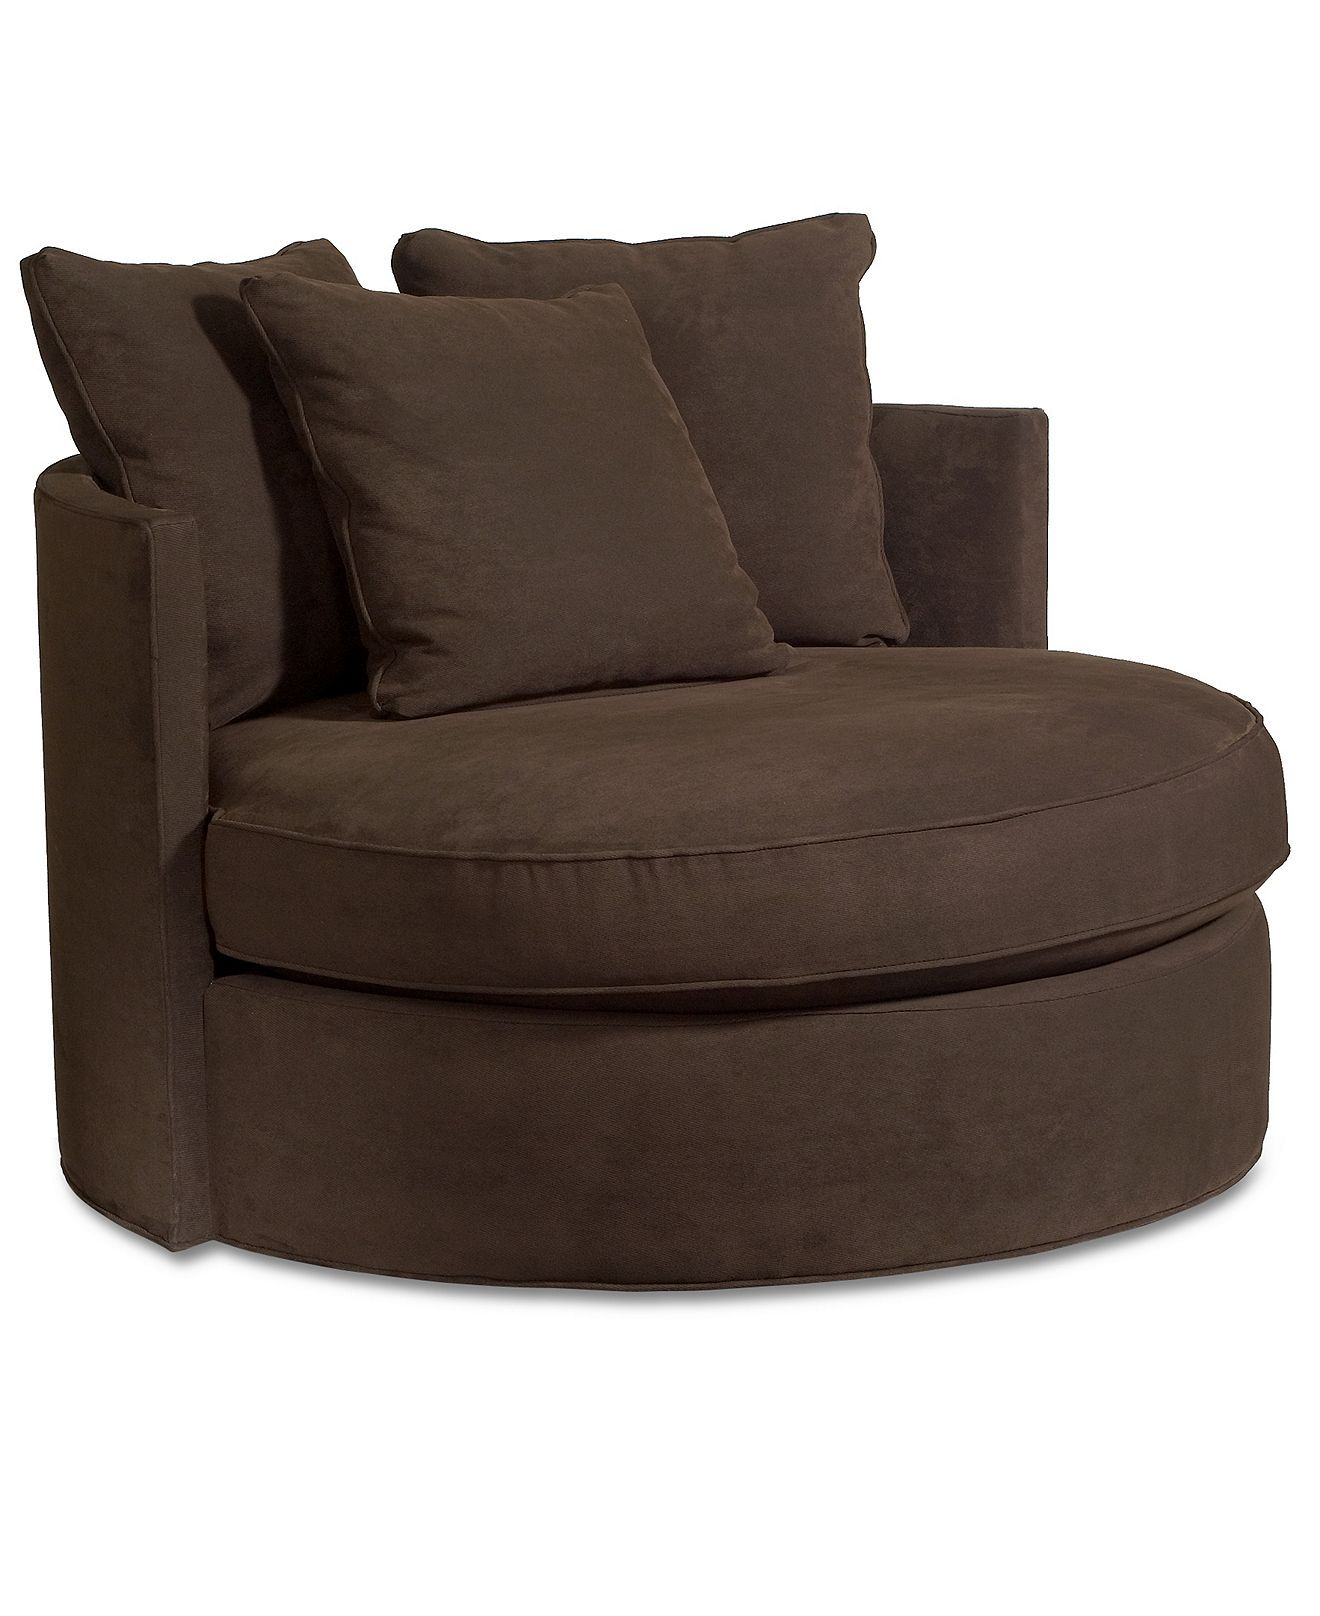 Round Comfy Chair Cuddle Chair Doss Godiva Fabric Microfiber Living Room